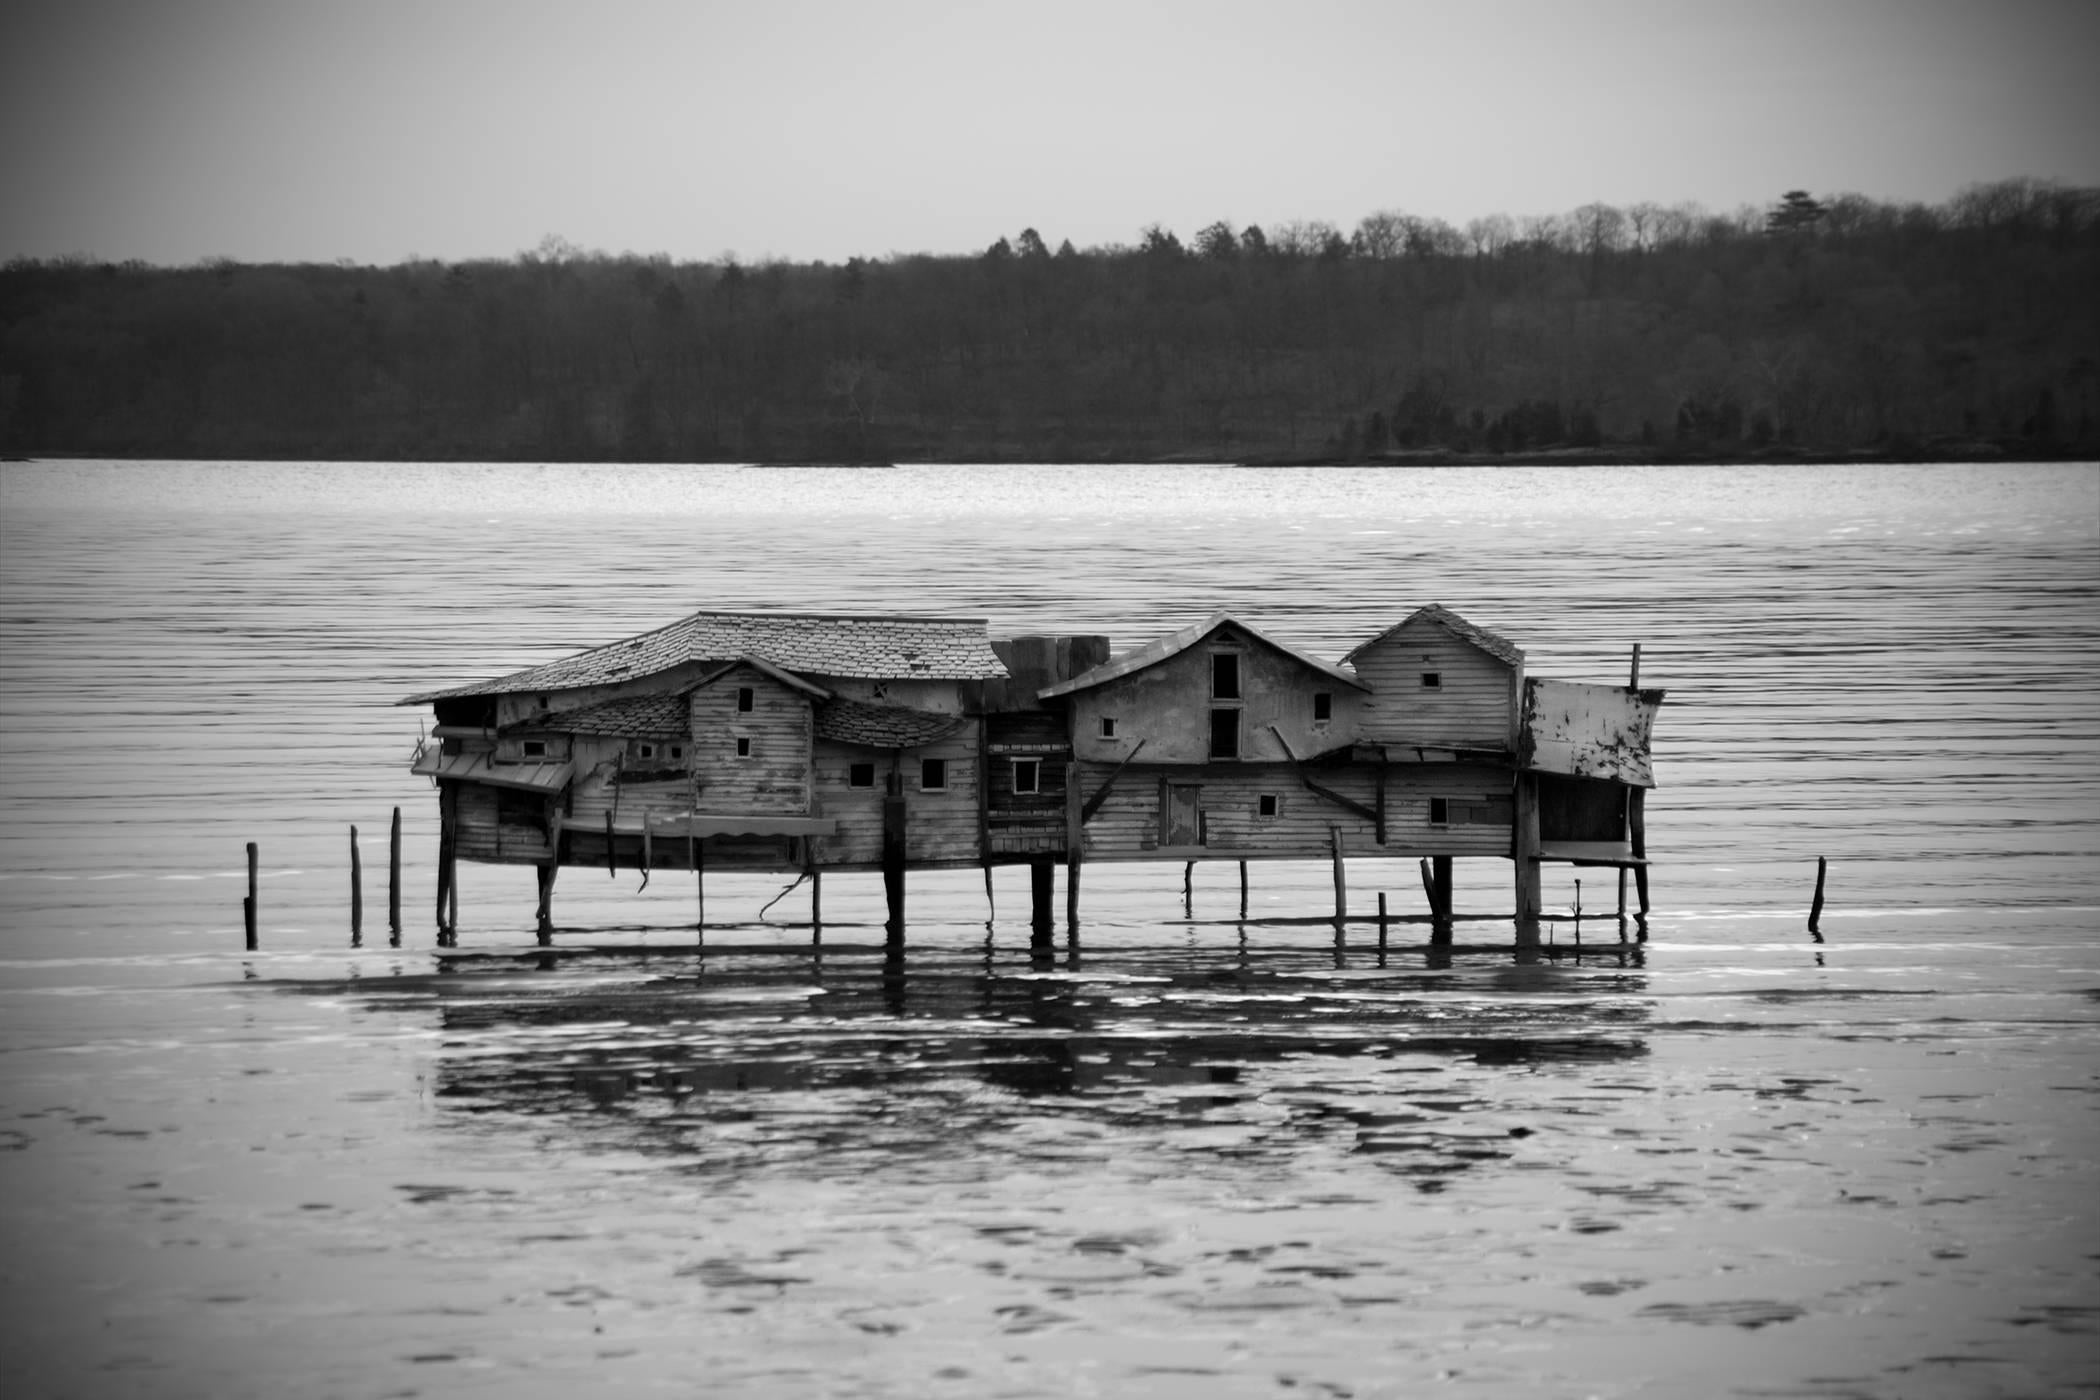 Mudflat House (Black & White Landscape Photograph of a House in Water)